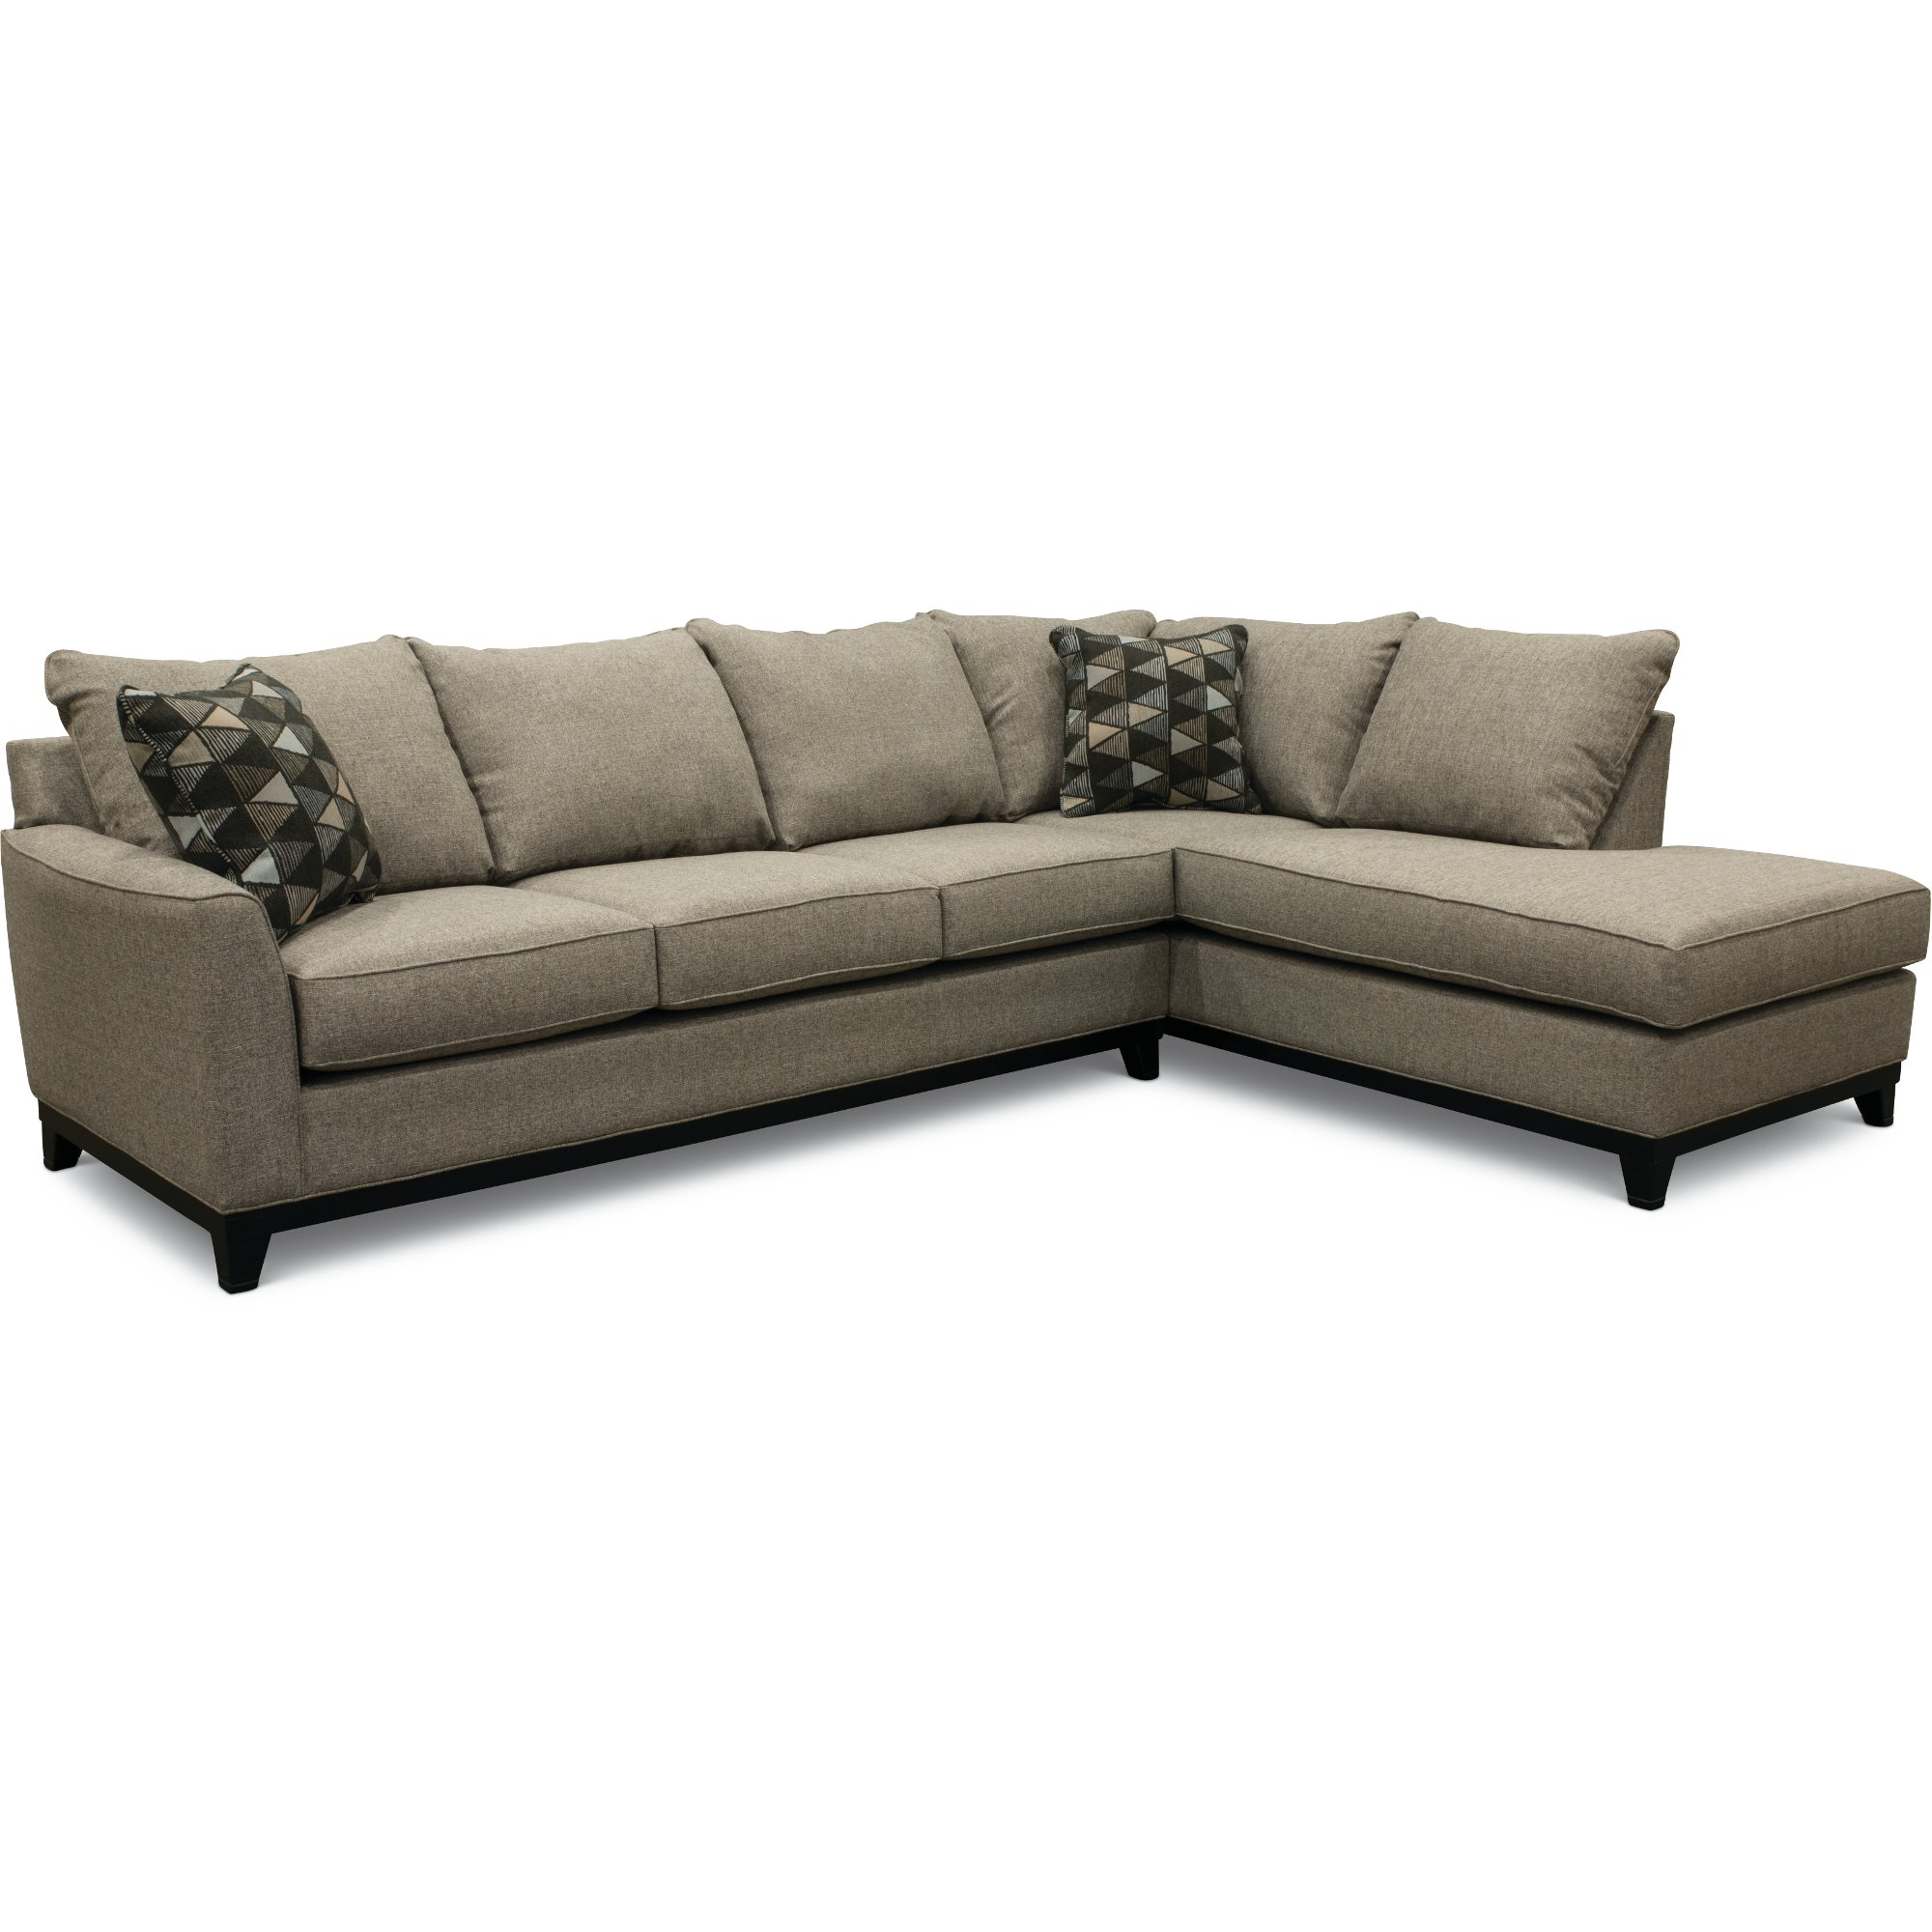 2-Piece Emerson Slate Gray Sectional Sofa with RAF Chaise